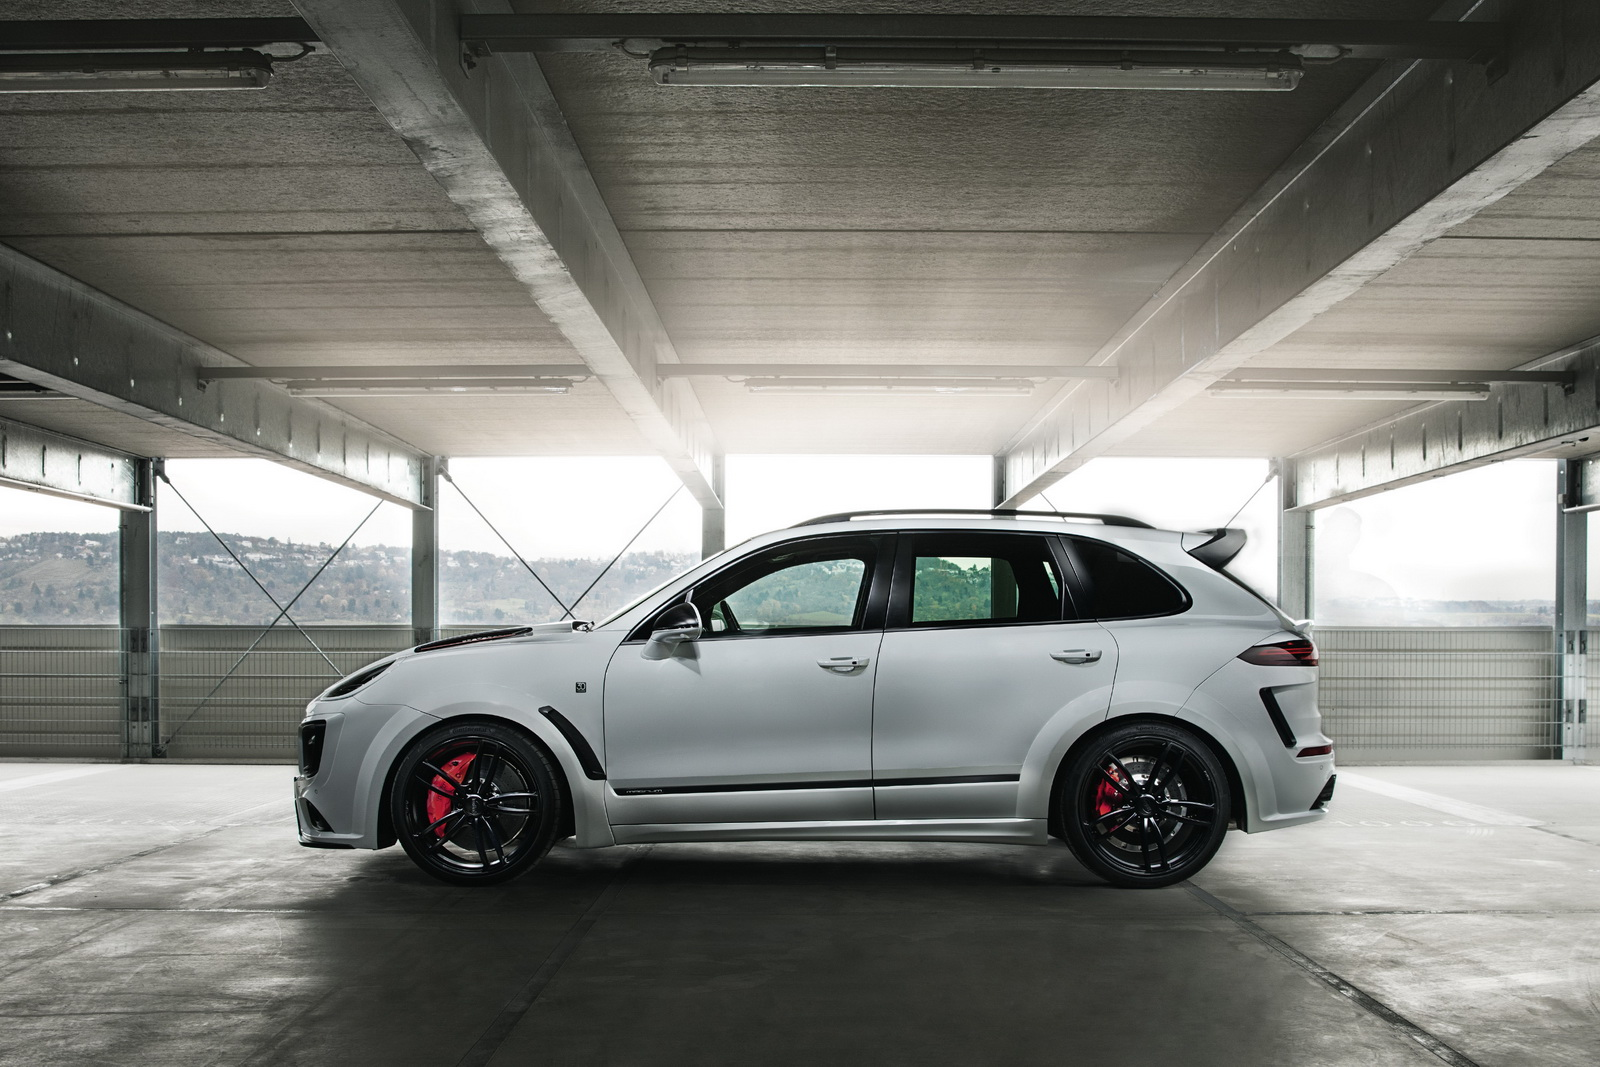 Techart's New 720HP Porsche Cayenne Magnum Sport Is Not For The Faint-Hearted | Carscoops